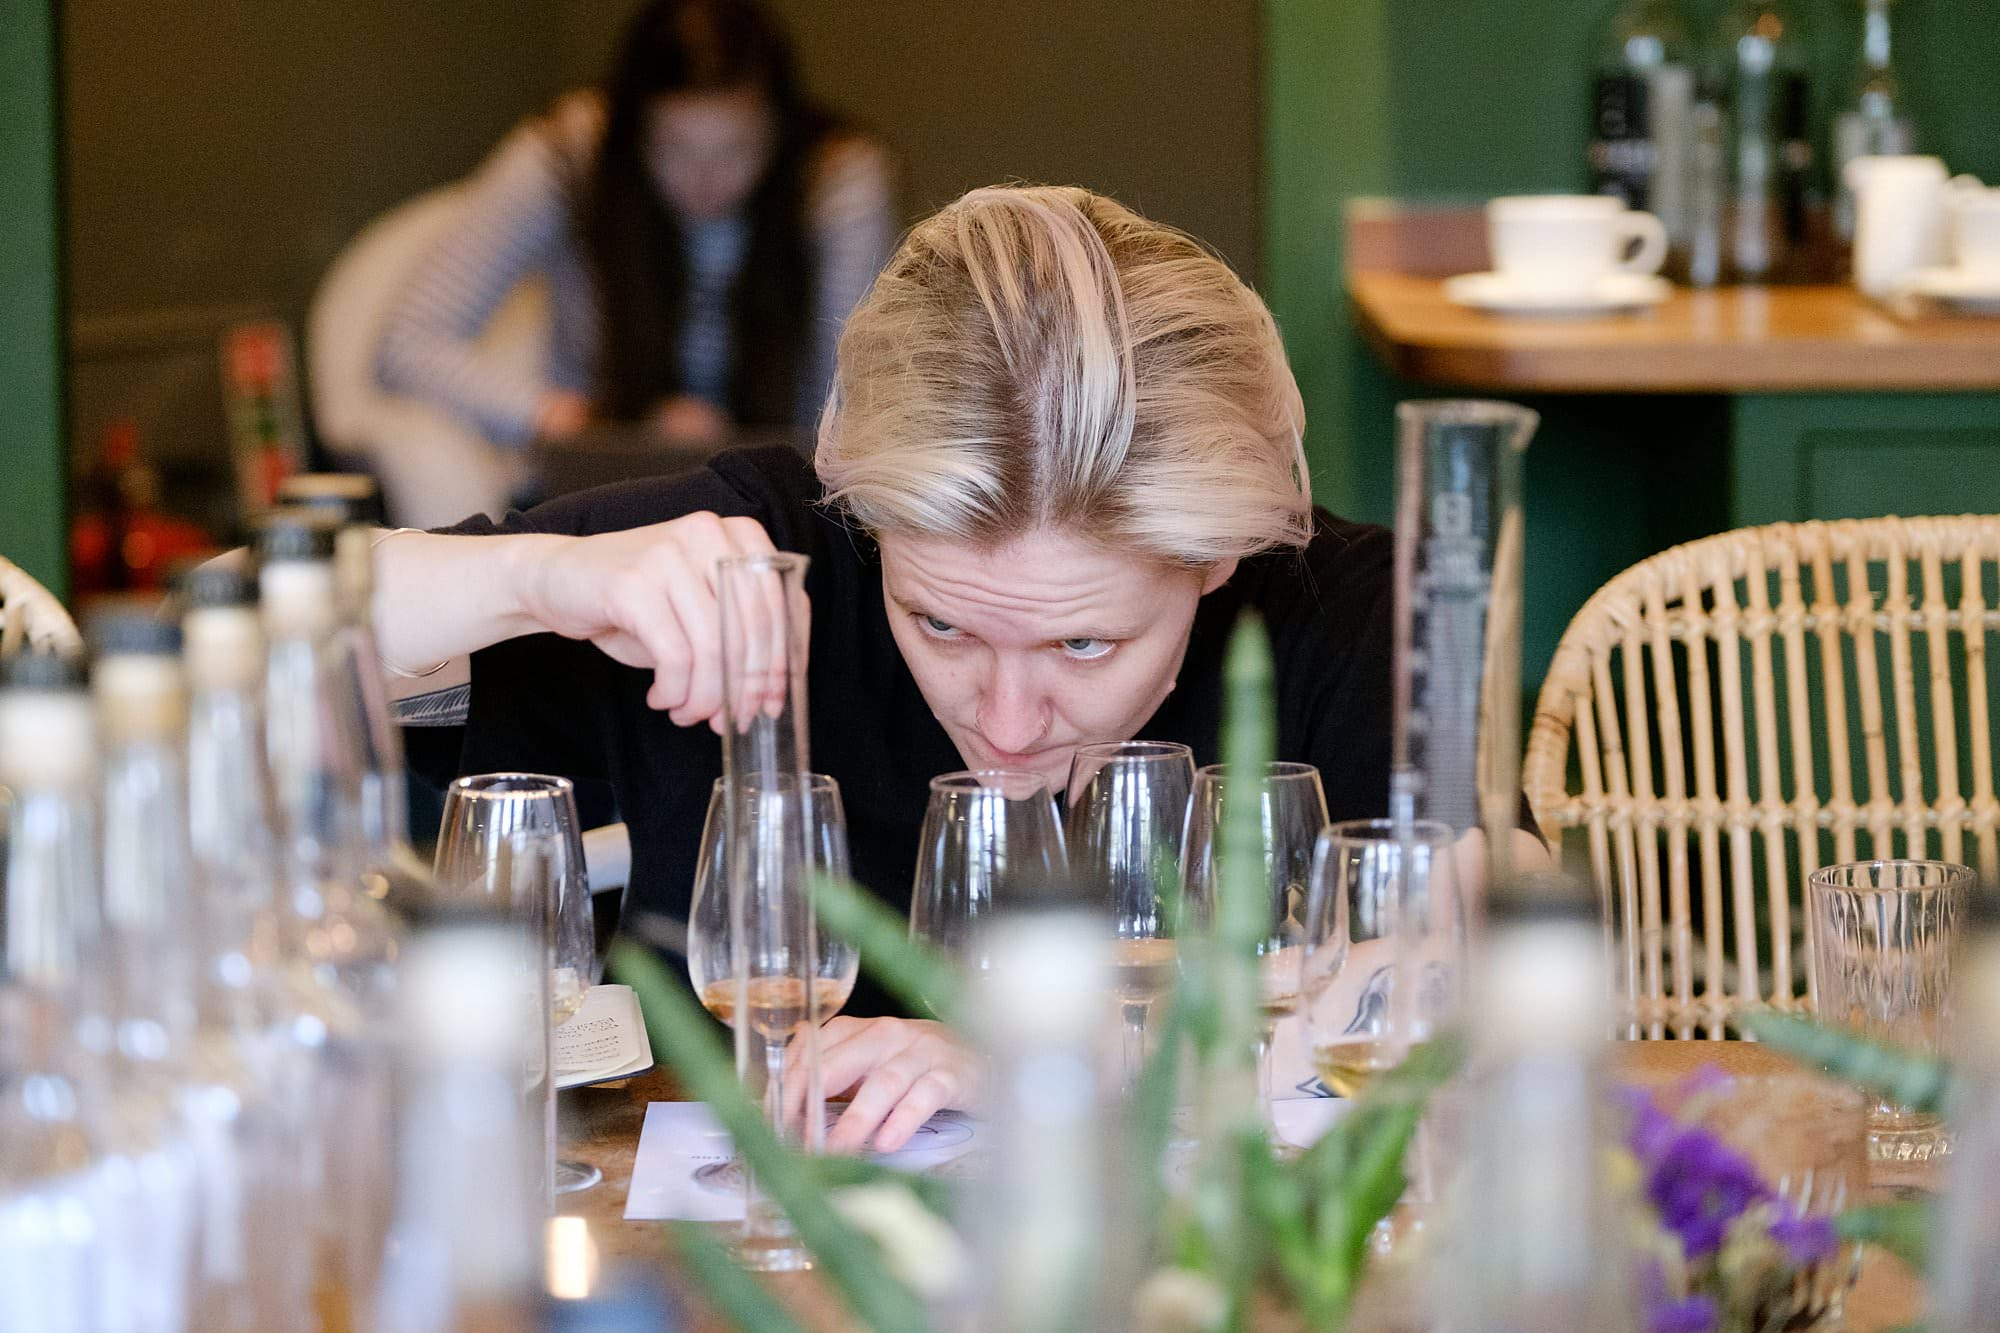 Rosey Mitchell preparing her winning whisky blend